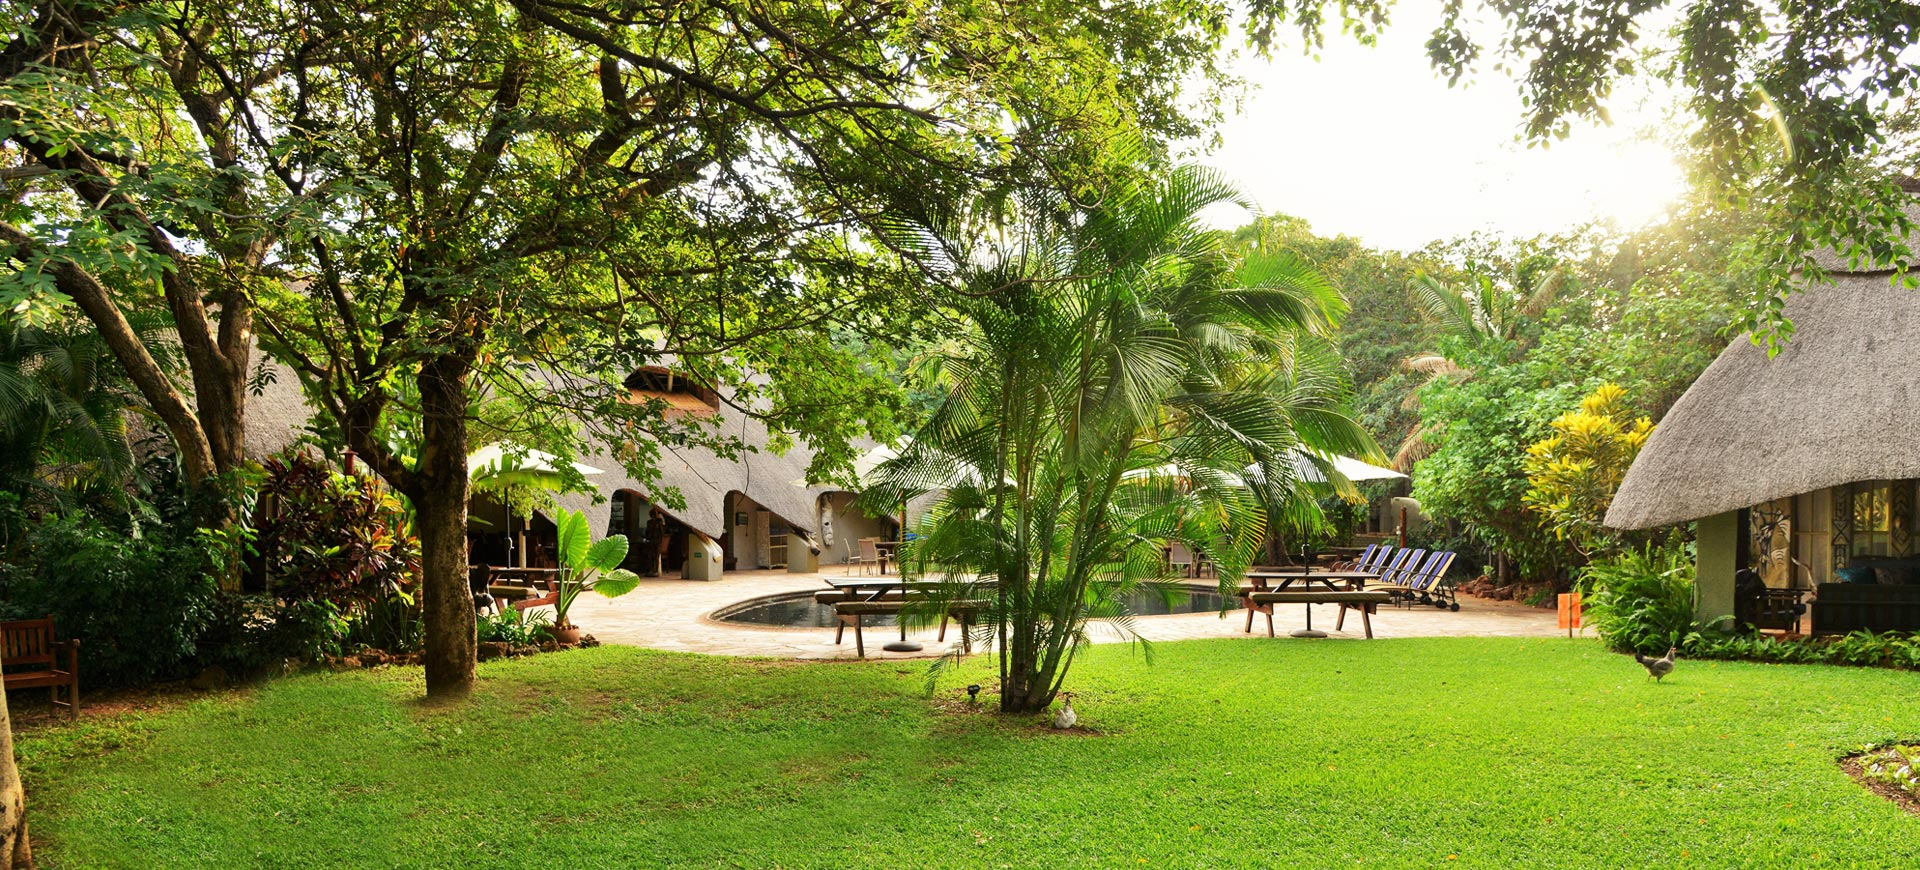 Bayete Lodge Gardens